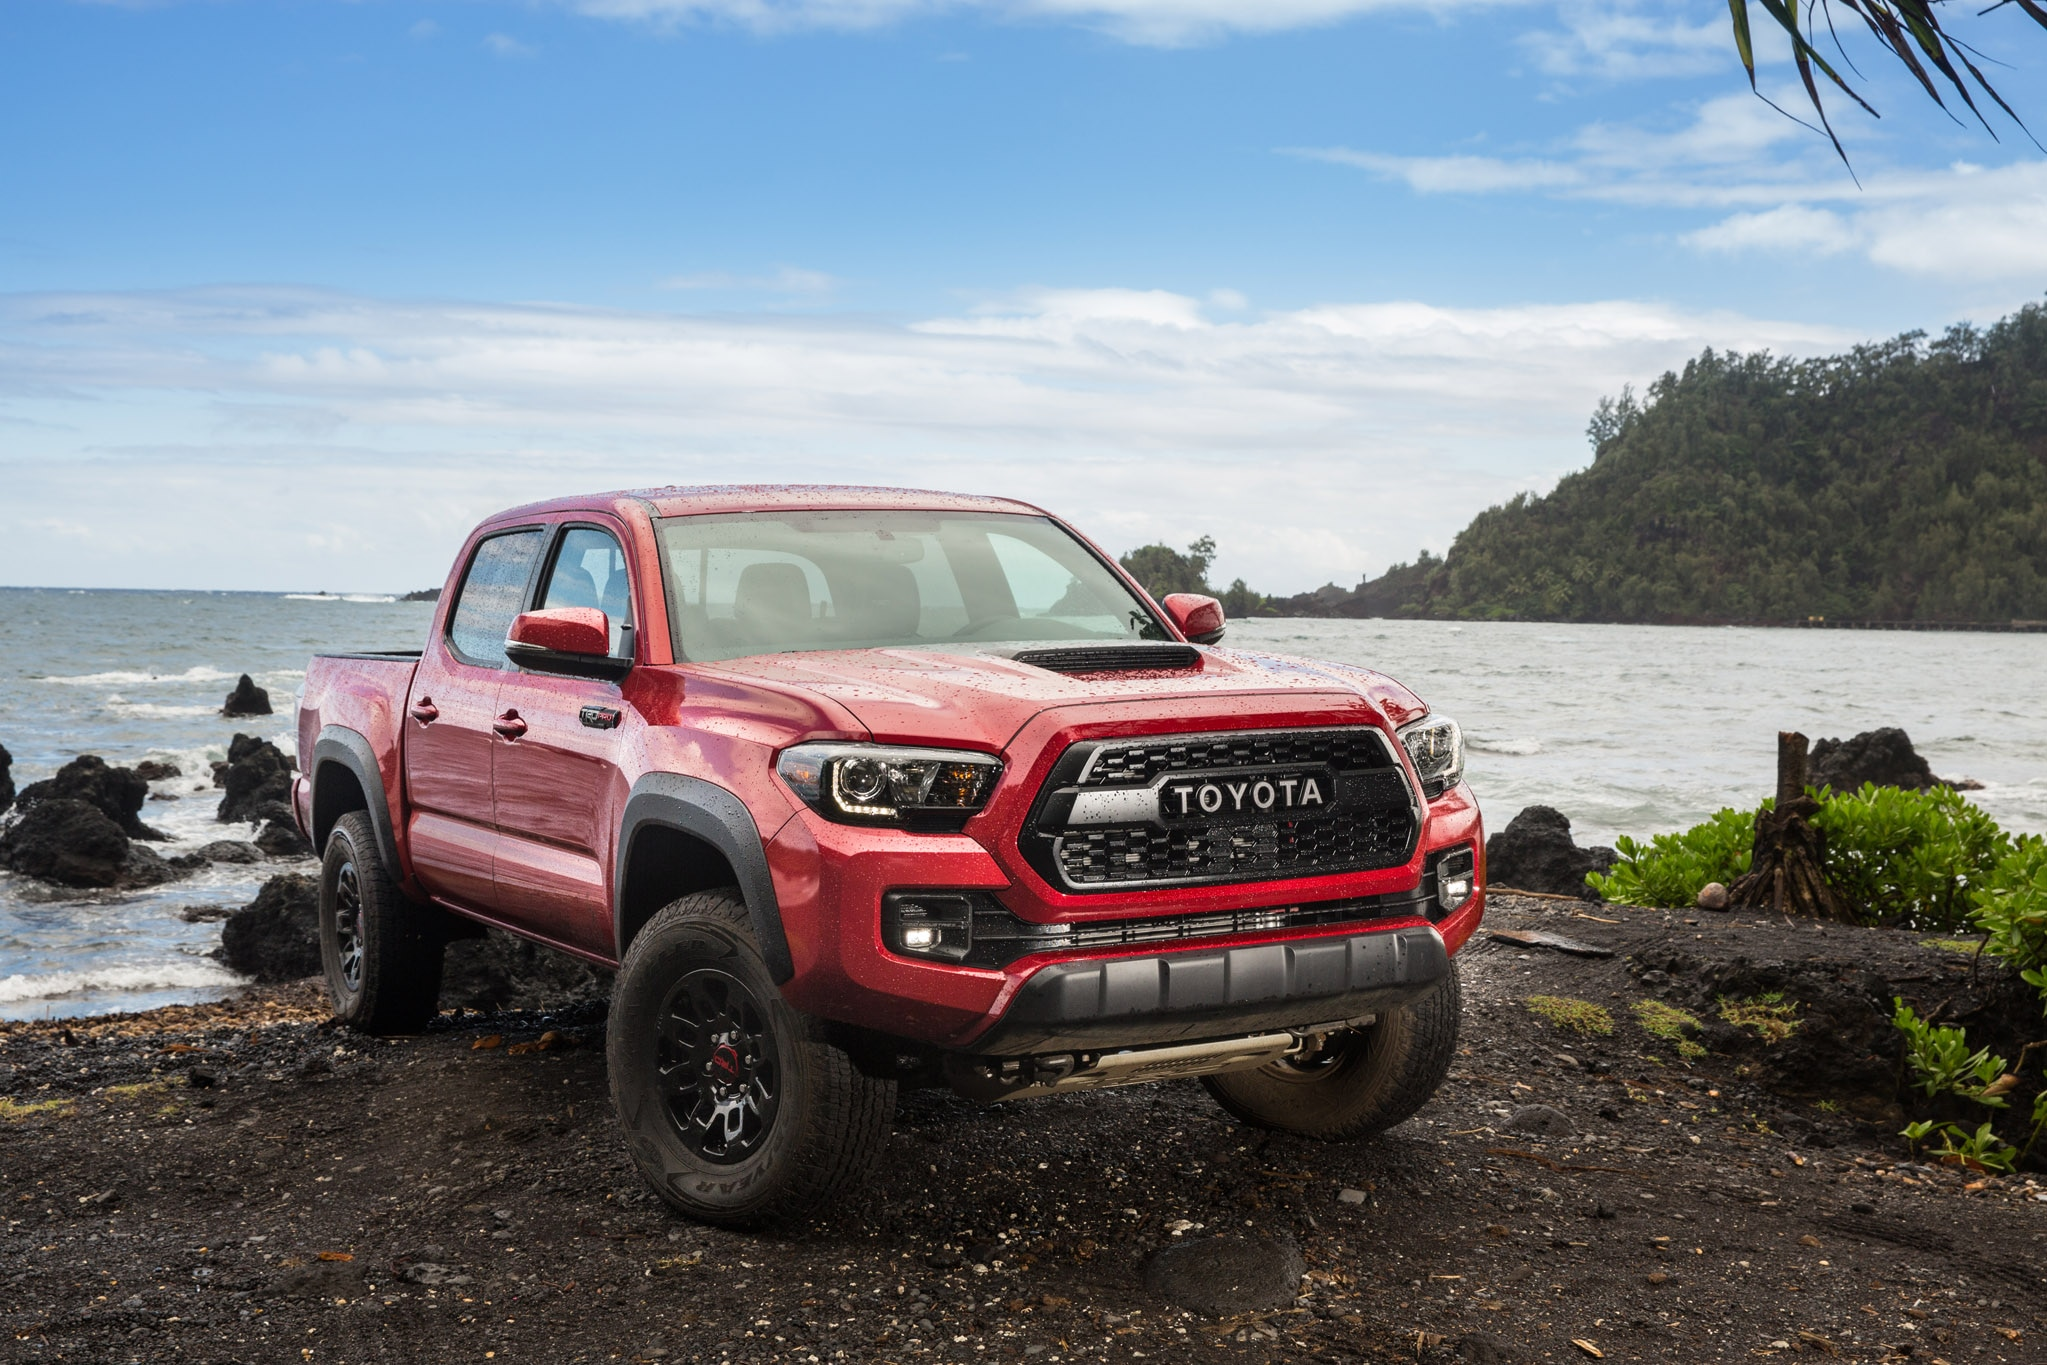 2017 toyota tacoma trd pro first drive review automobile. Black Bedroom Furniture Sets. Home Design Ideas